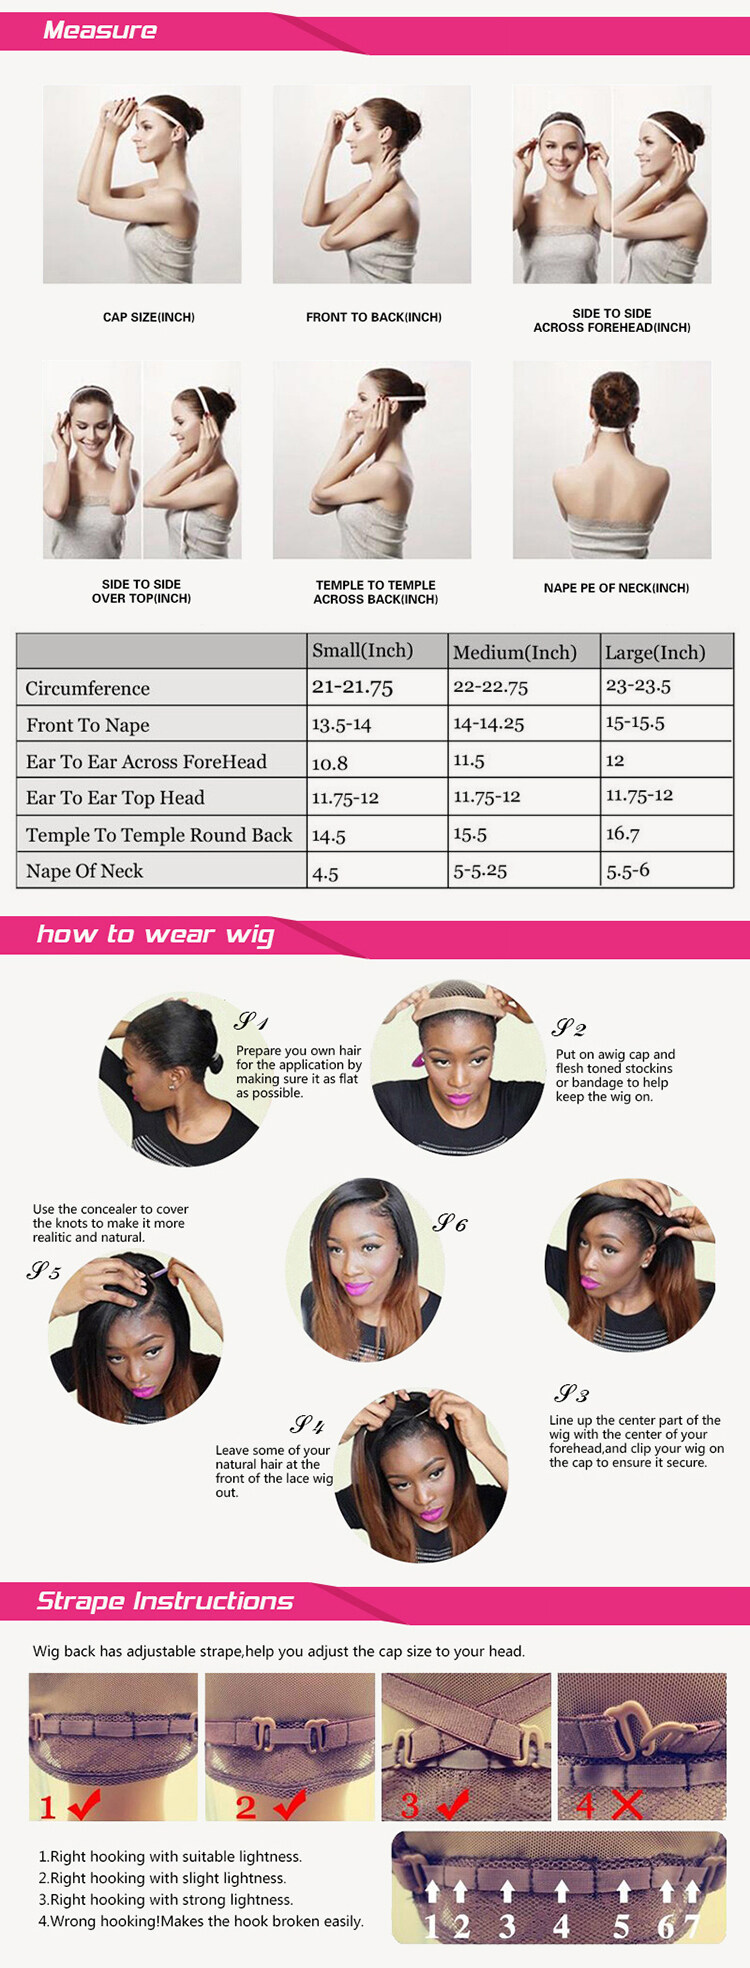 """100% Virgin Hair Full lace wigs with Bob styles 12"""" and blonde colors100% Virgin Hairs Full lace wigs 12"""",Bob styles and blonde colors"""